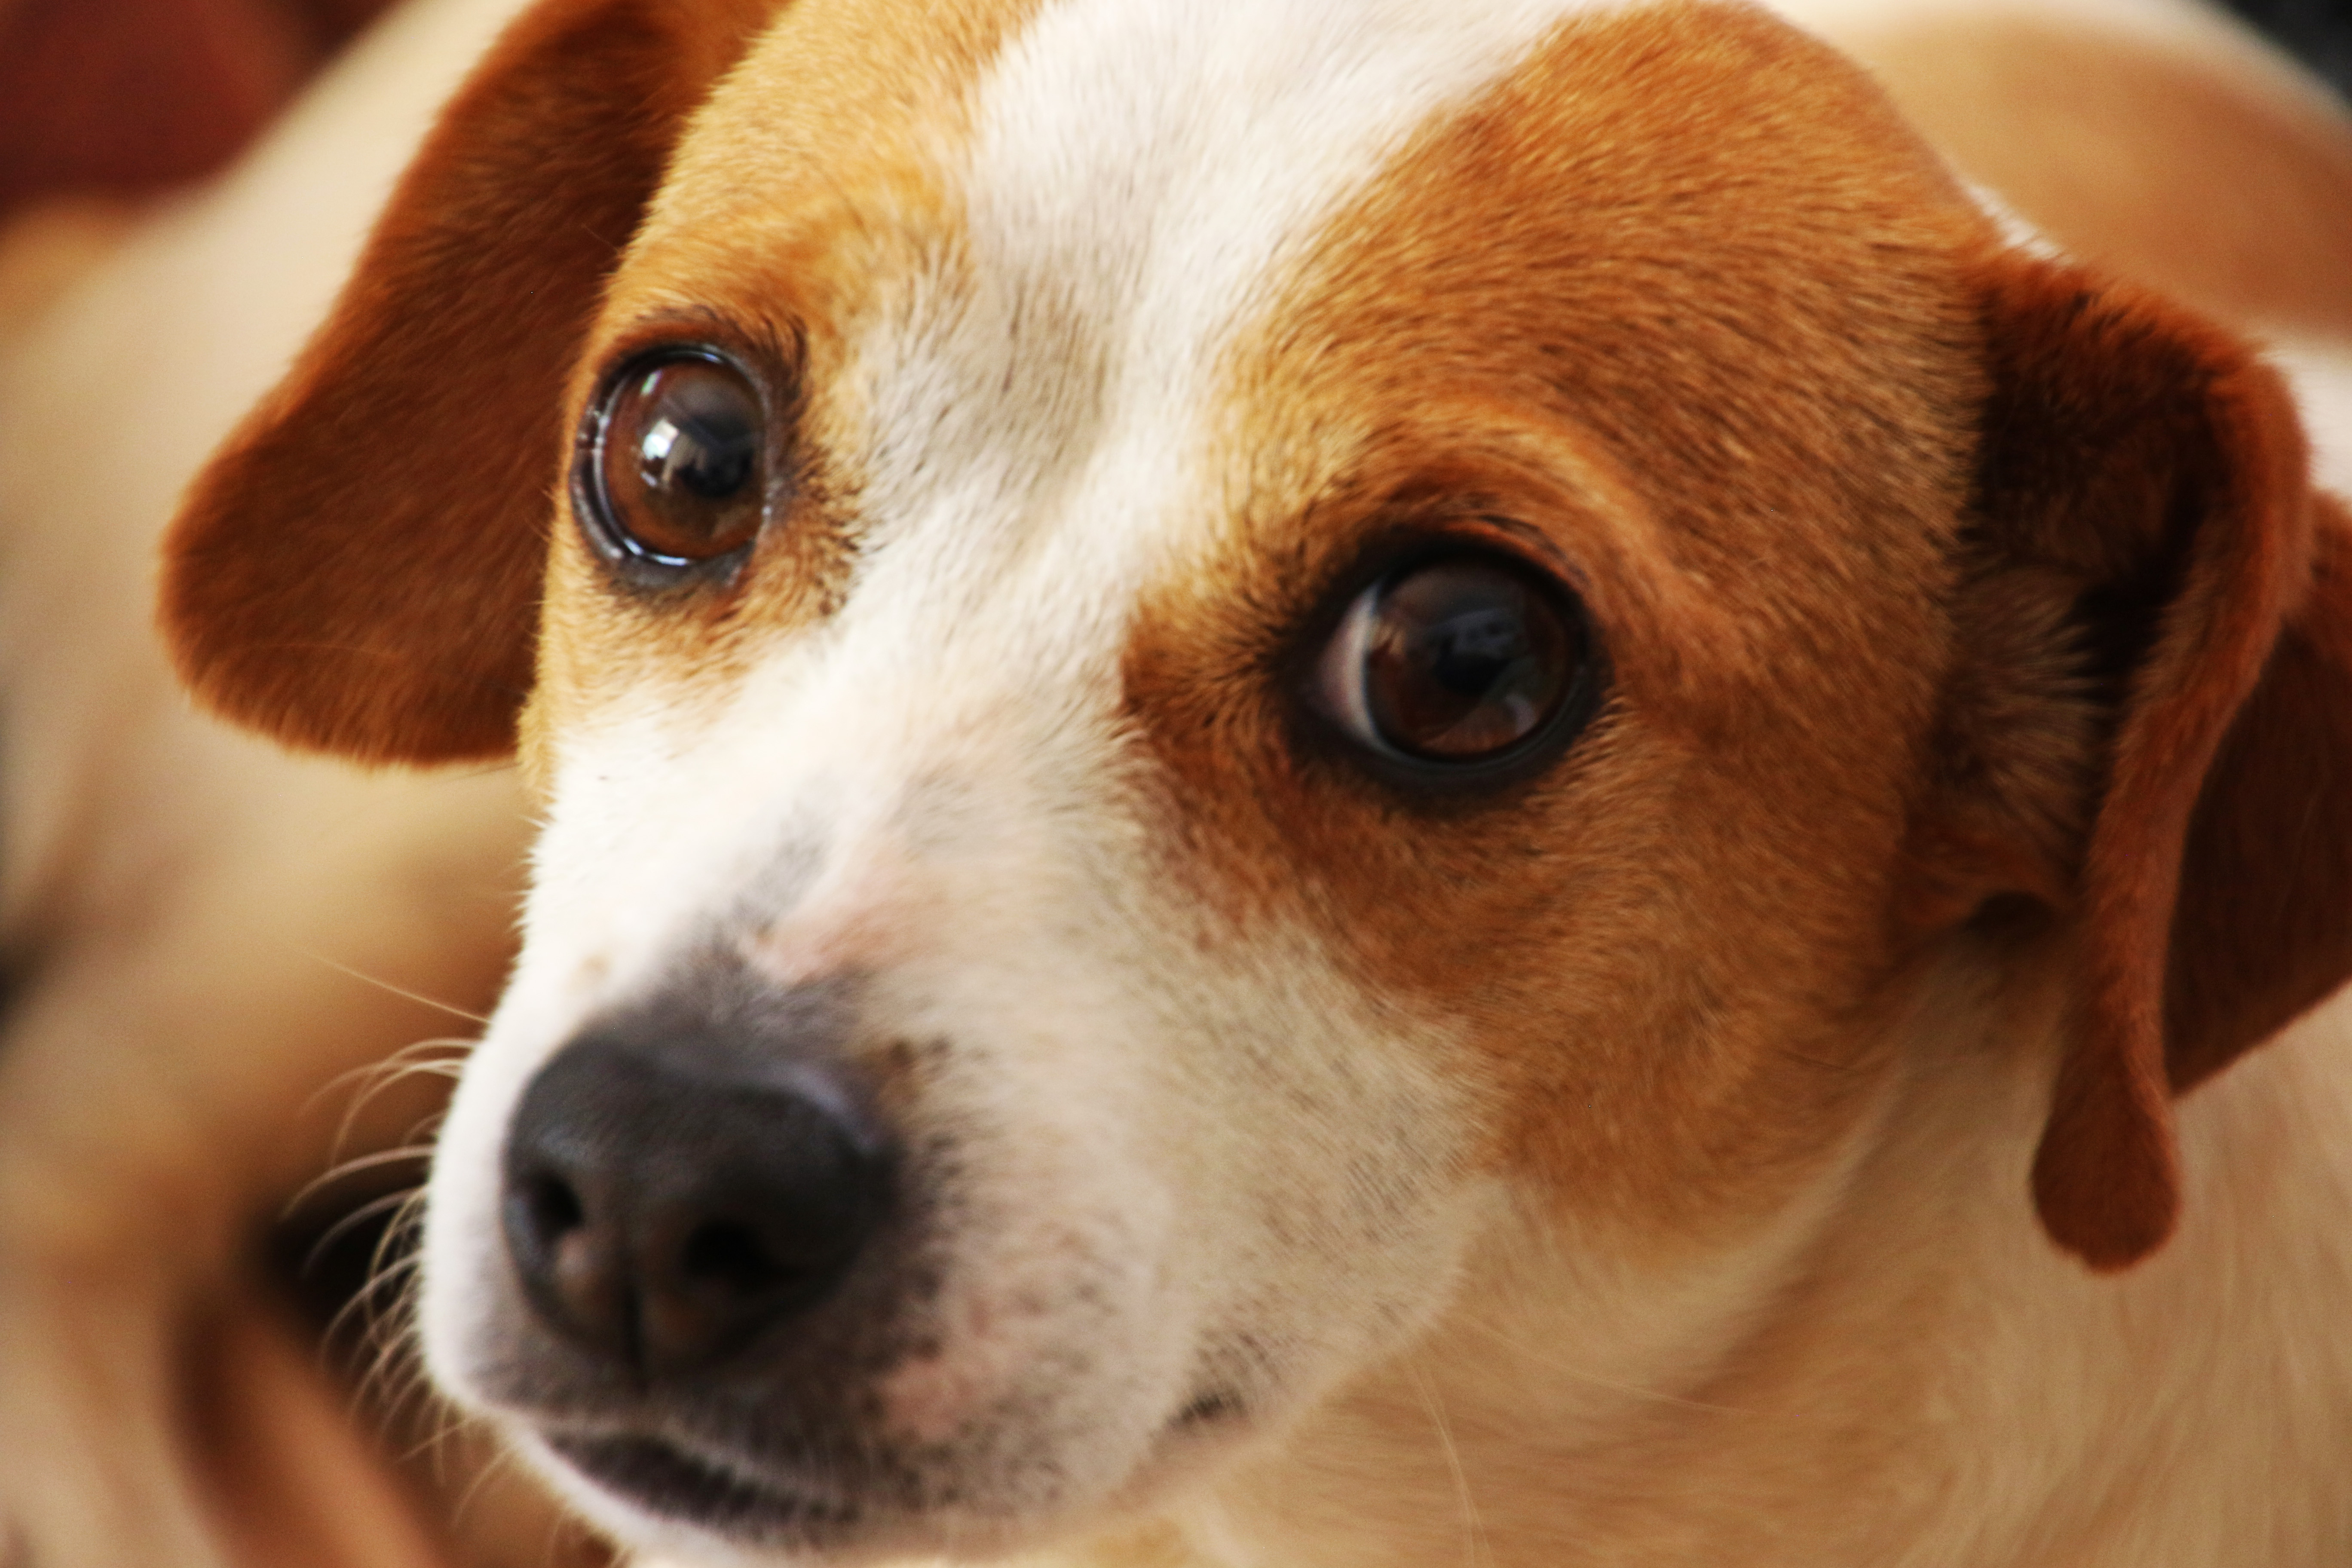 Brown And White Dog Close Up Photo ...